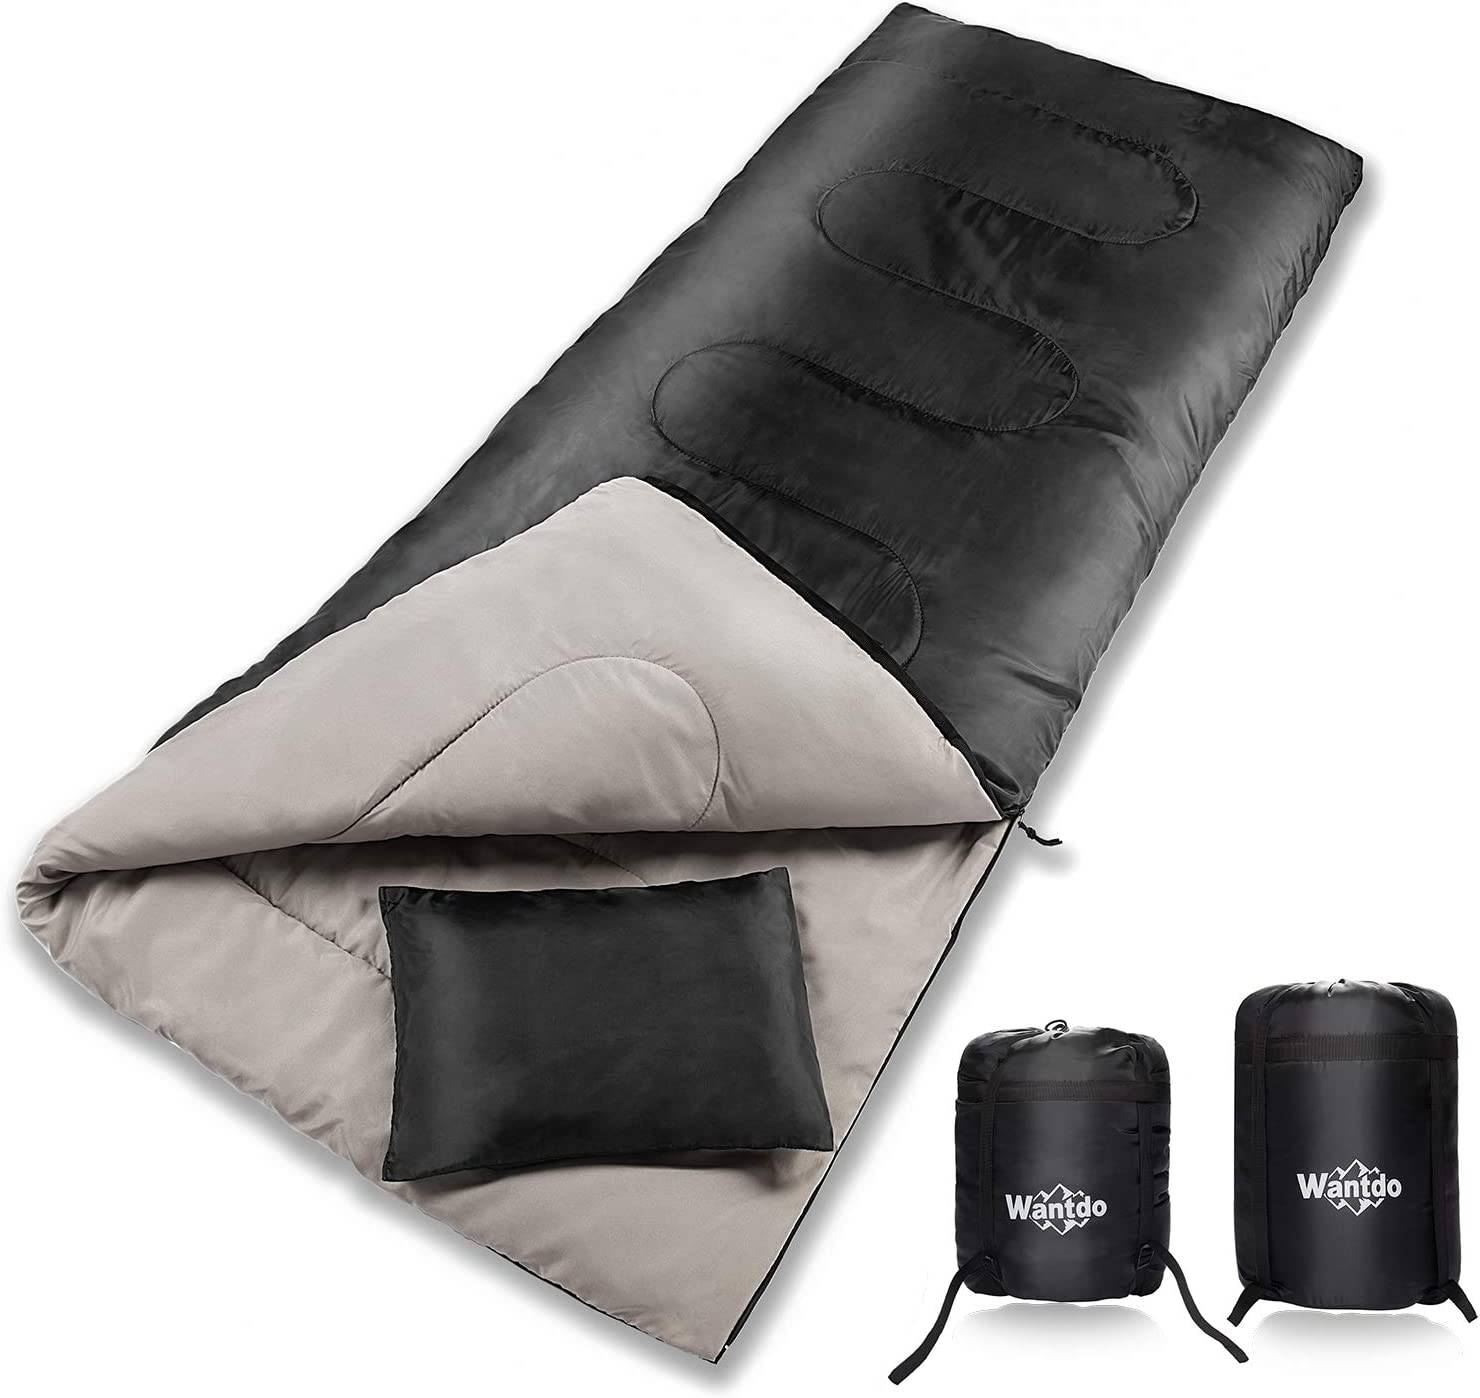 Wantdo Envelope Sleeping Bag Cold Weather 32 Fahrenheit Degree Camping Waterproof Indoor Outdoor Use, Portable Lightweight Great for Hiking Backpacking